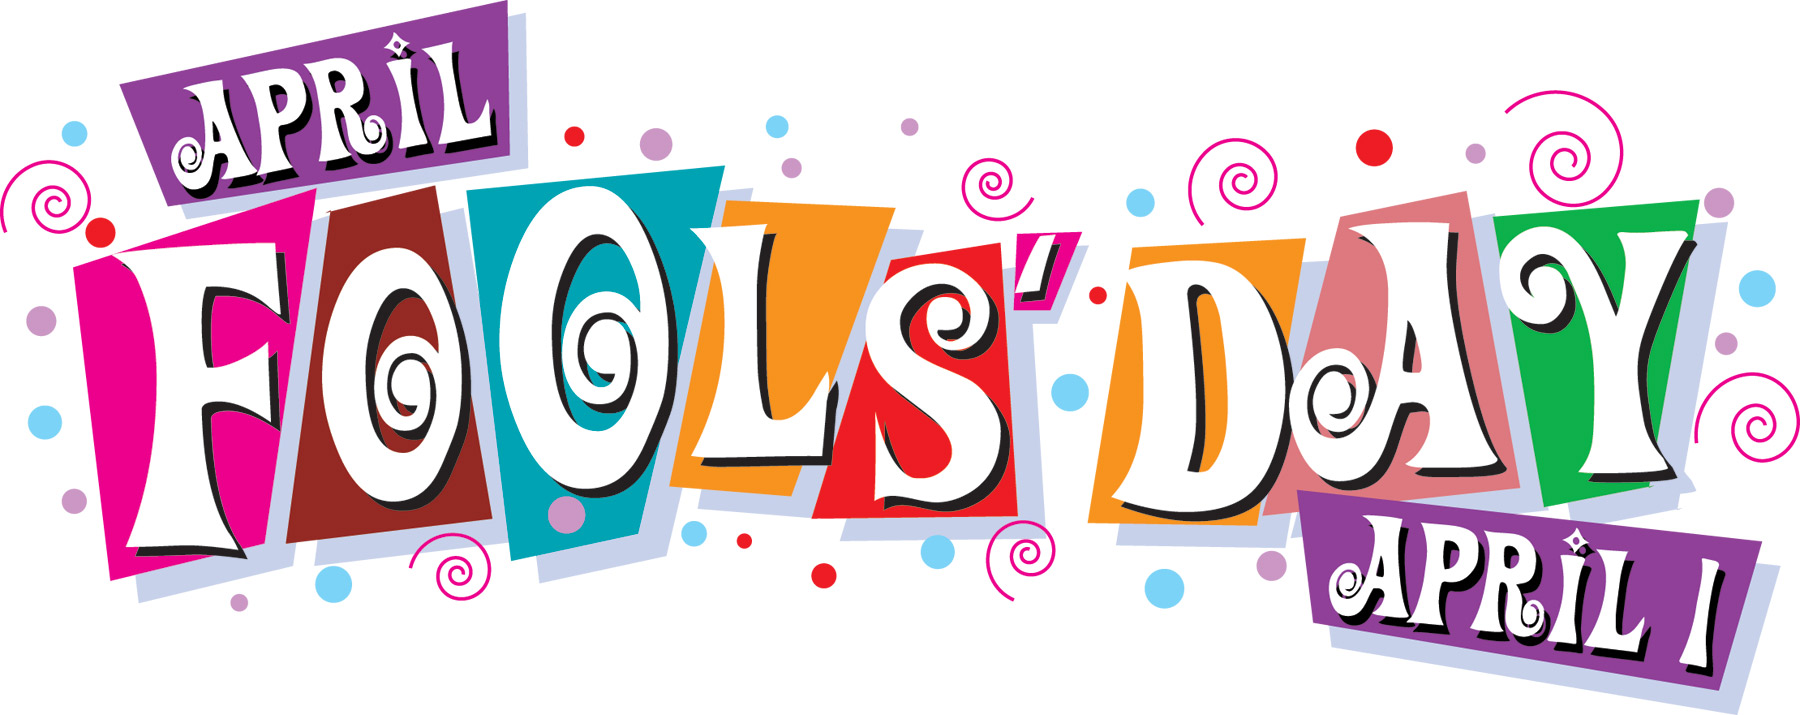 April Holiday Clipart.